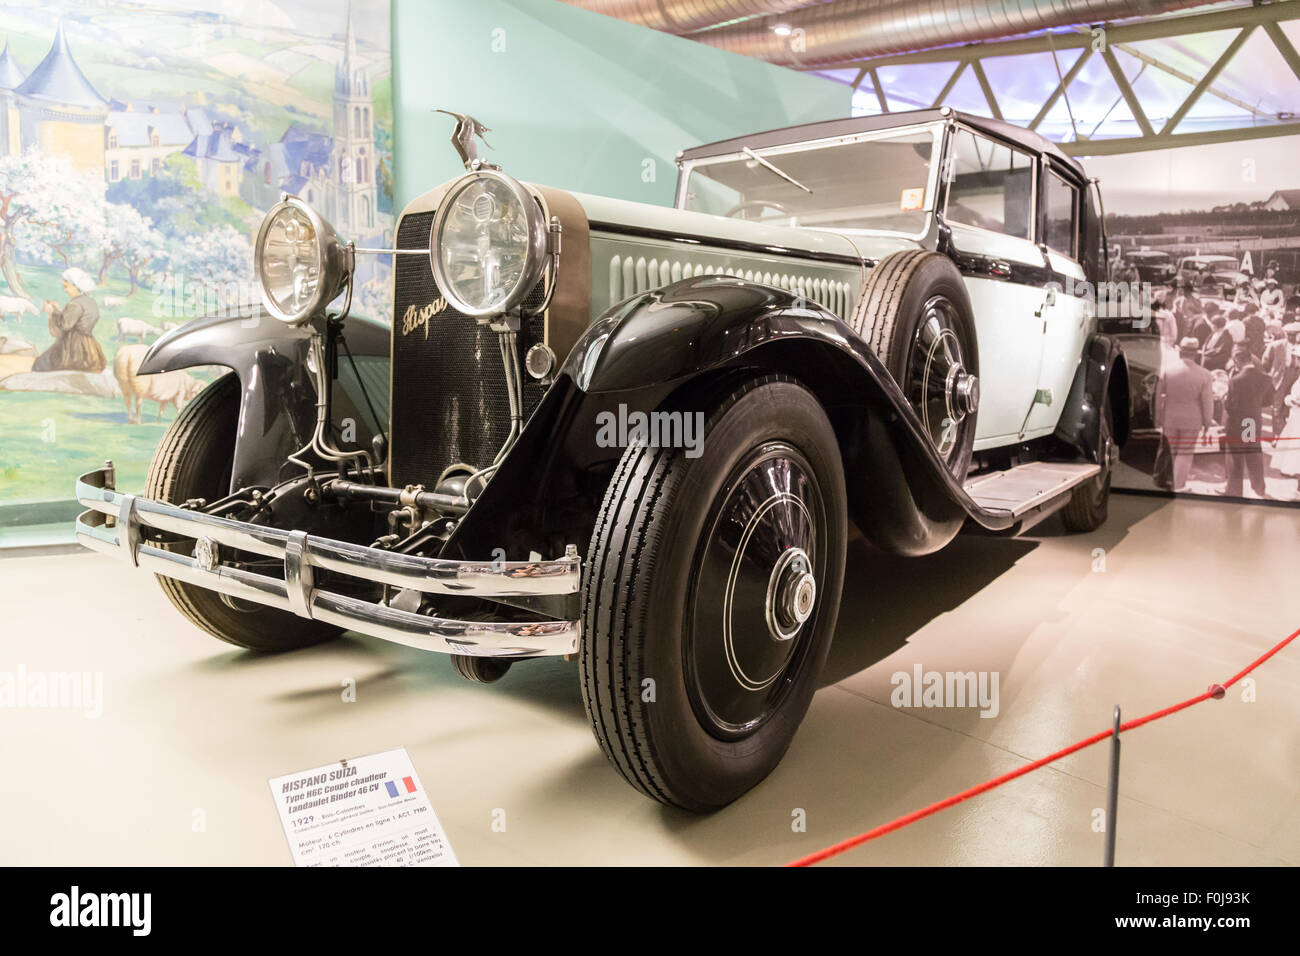 Car museum at Le Mans, France - Stock Image